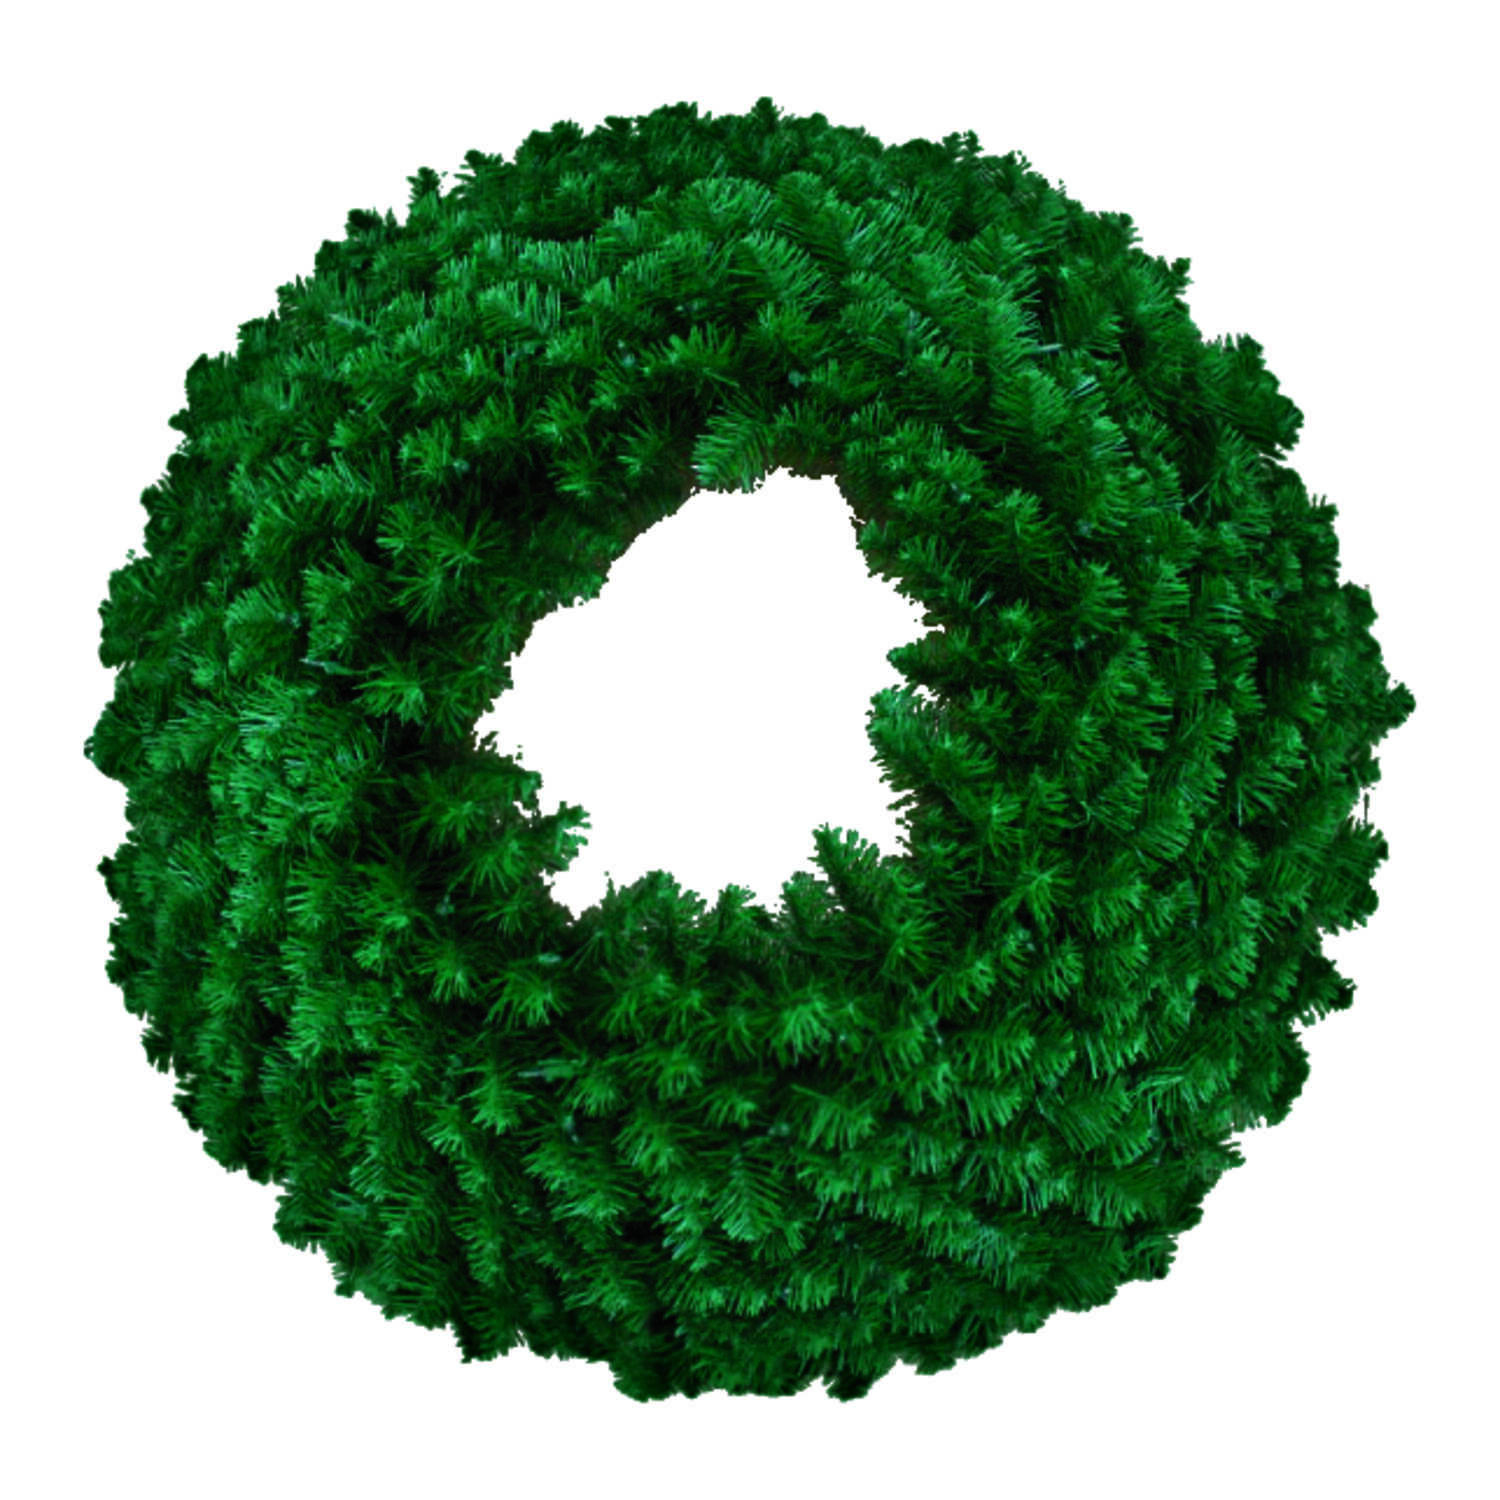 J & J Seasonal  Green  Masterpiece Wreath  72 in. Dia.